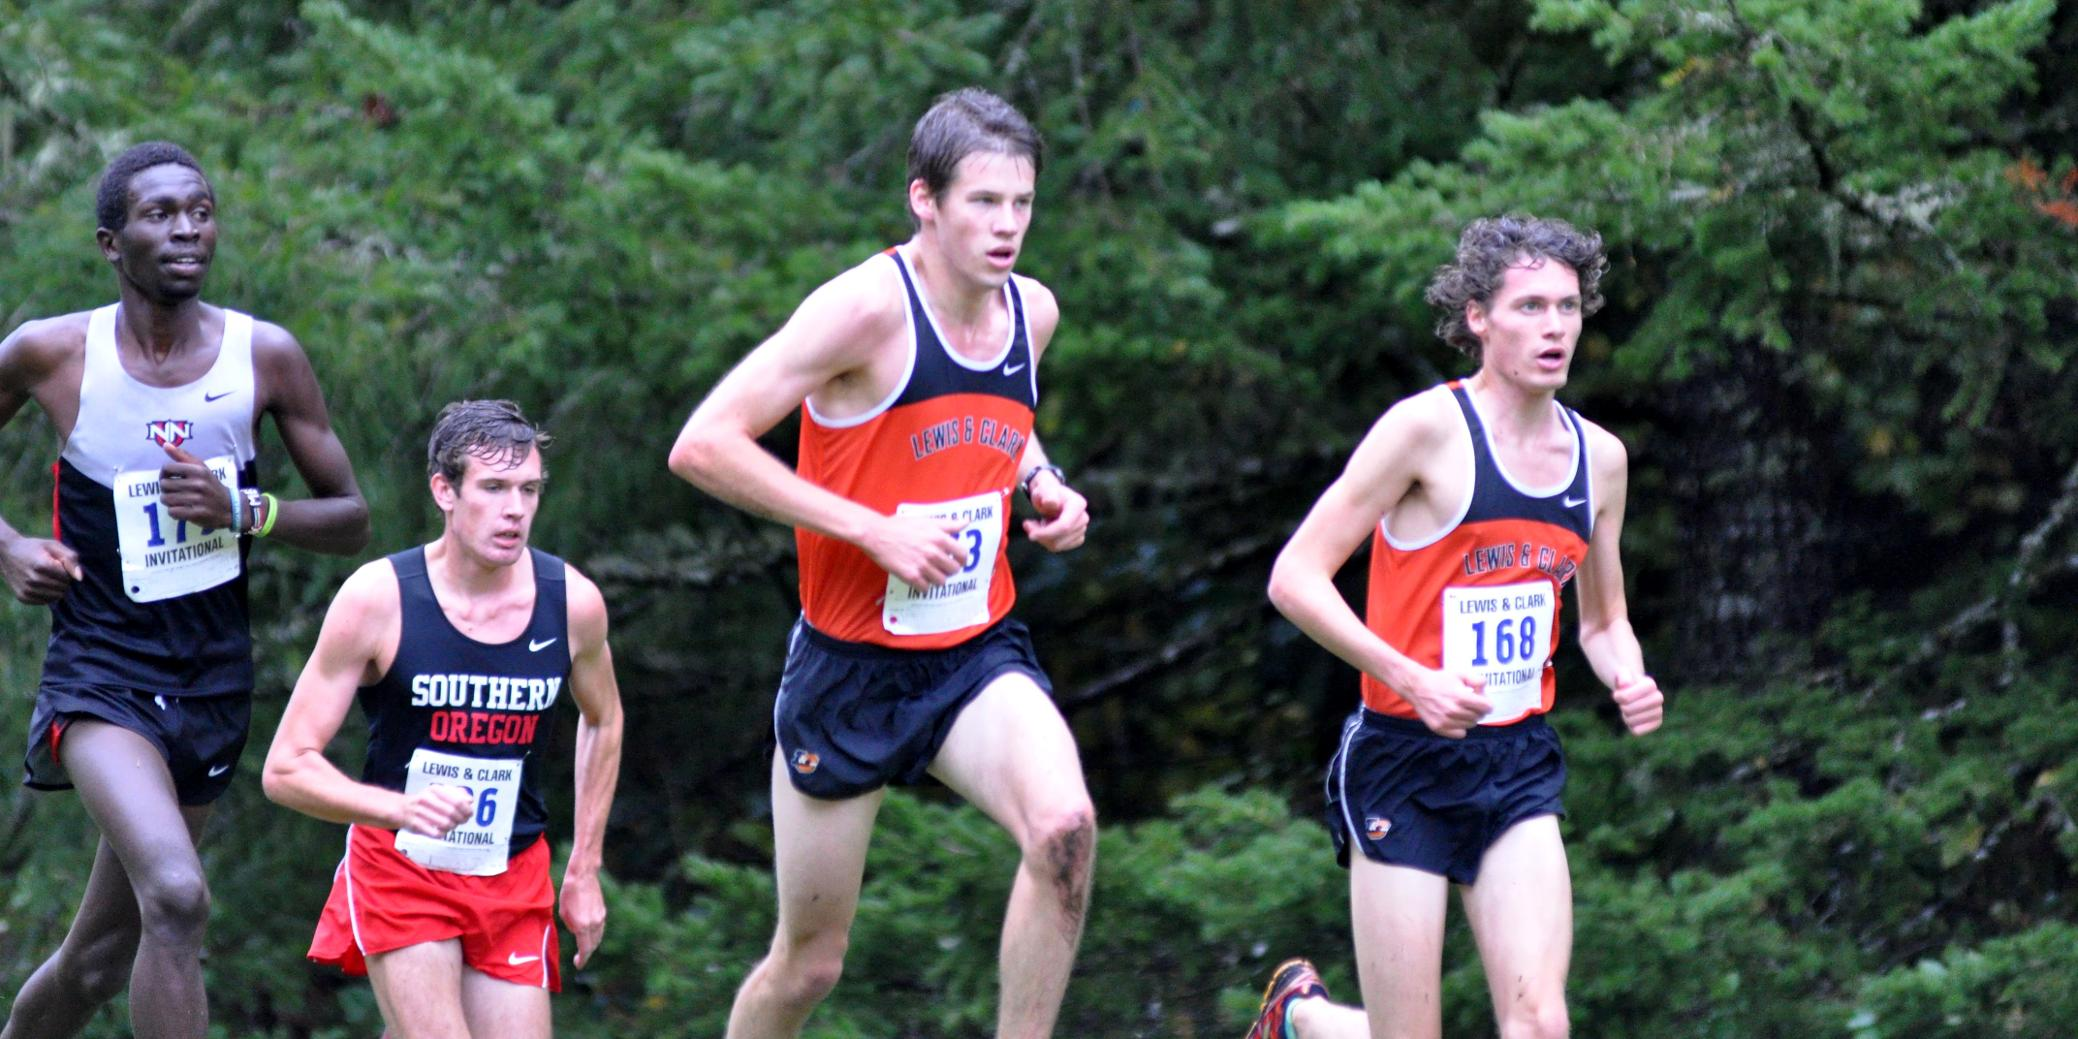 Monheim places second overall, Swanson leads women at L&C Invite